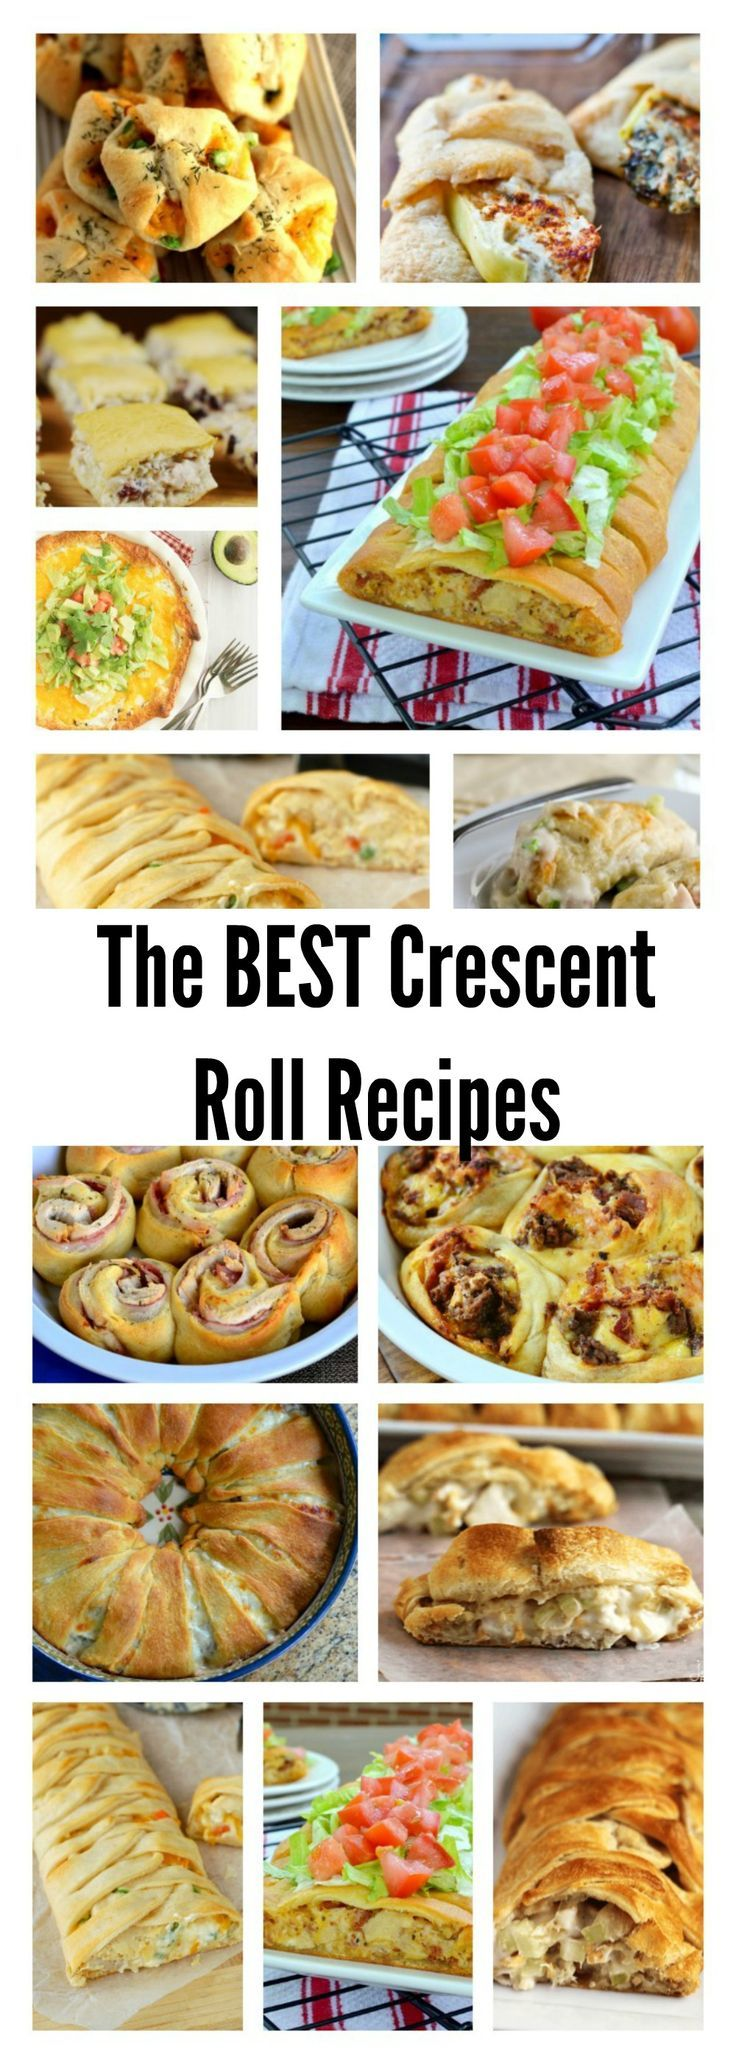 Best Crescent Roll Recipes - easy to make and great for parties. You'll love the variety of recipes made with family favourite crescent rolls.